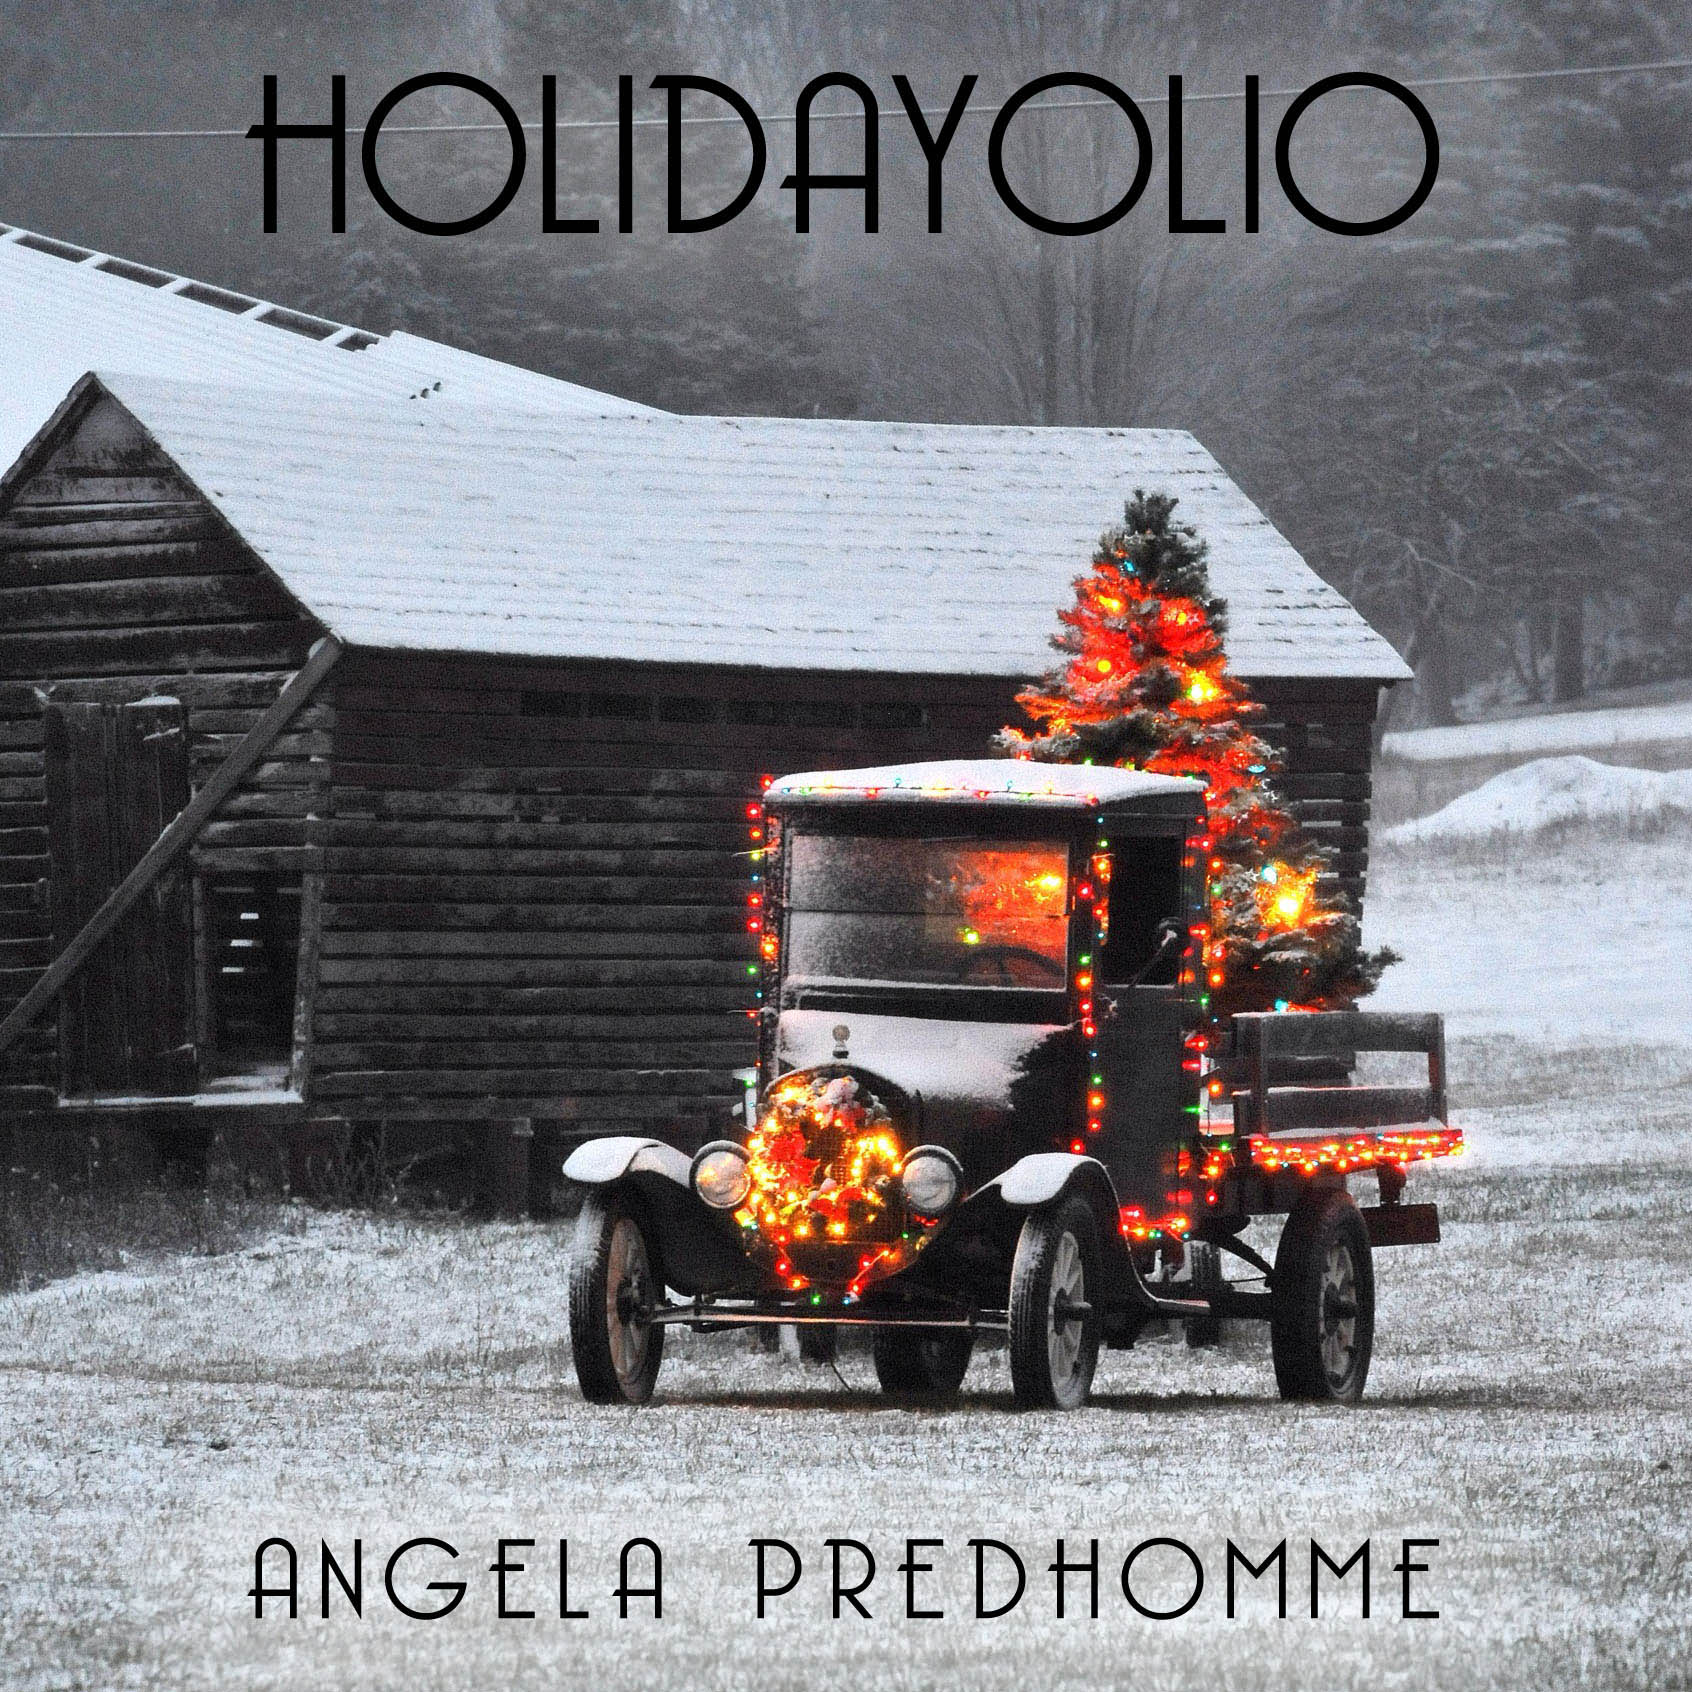 Holidayolio - a collection of Christmas songs by singer-songwriter Angela Predhomme